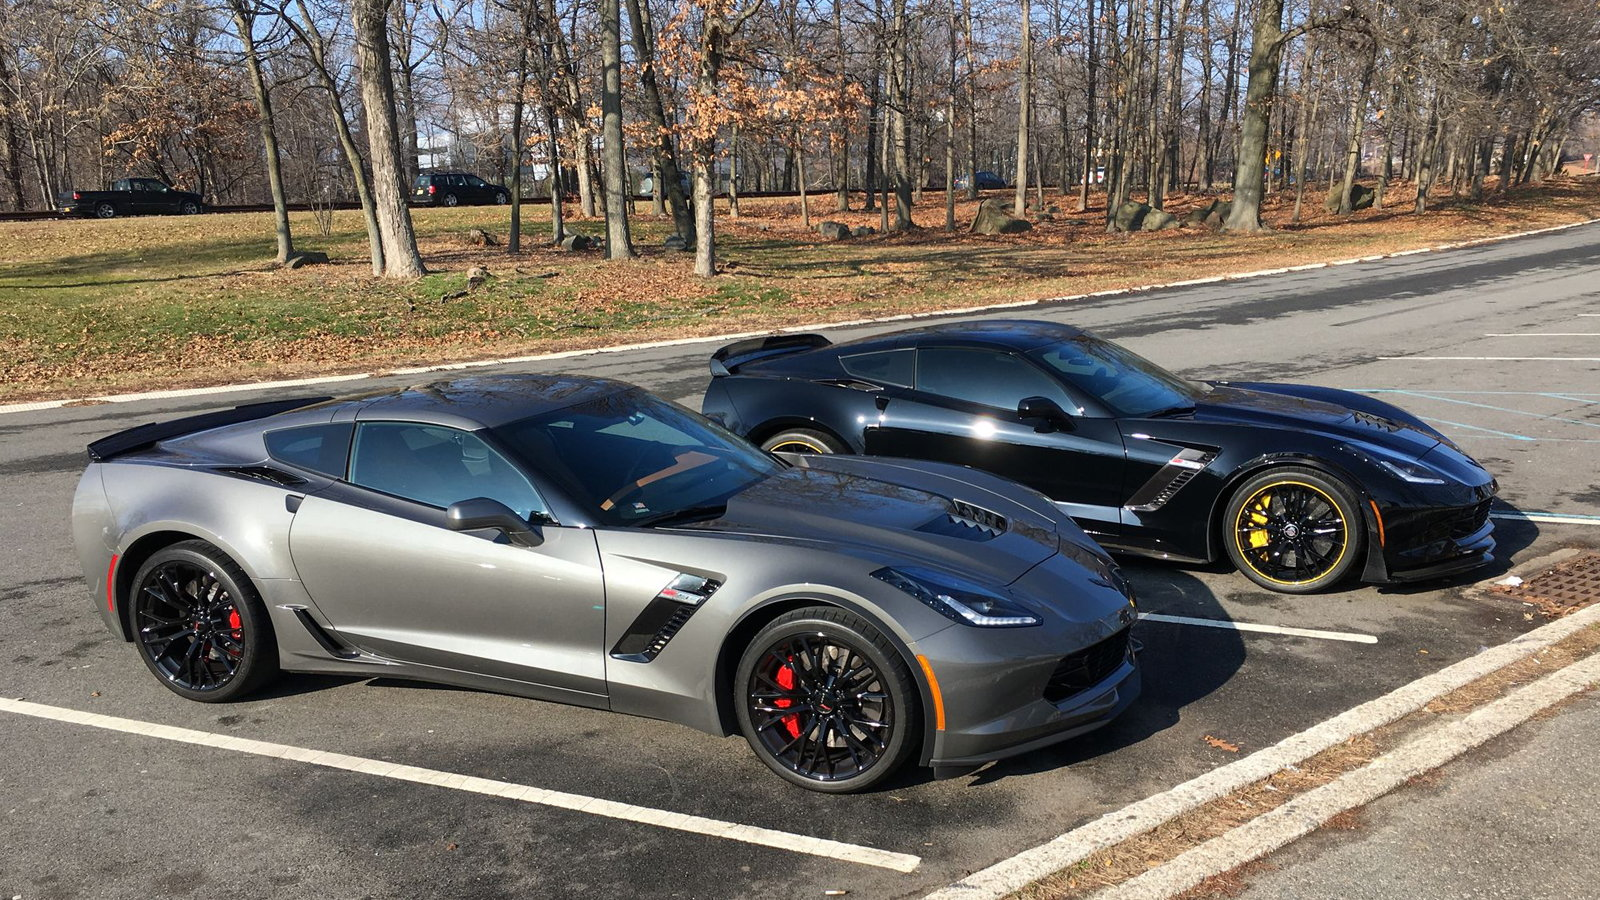 Owners Taking their Corvettes out for Scenic Drives